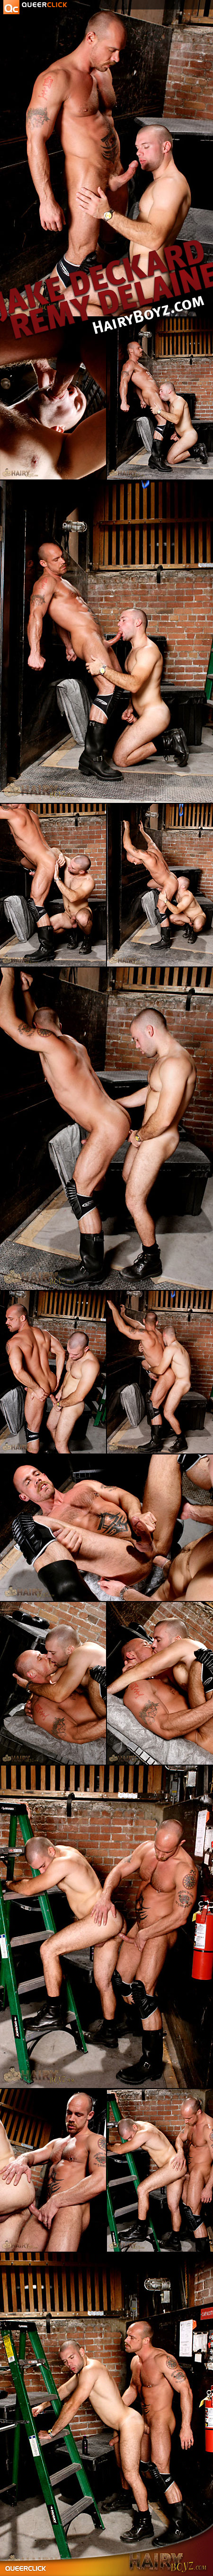 Jake Deckard and Remy Delaine at HairyBoyz.com